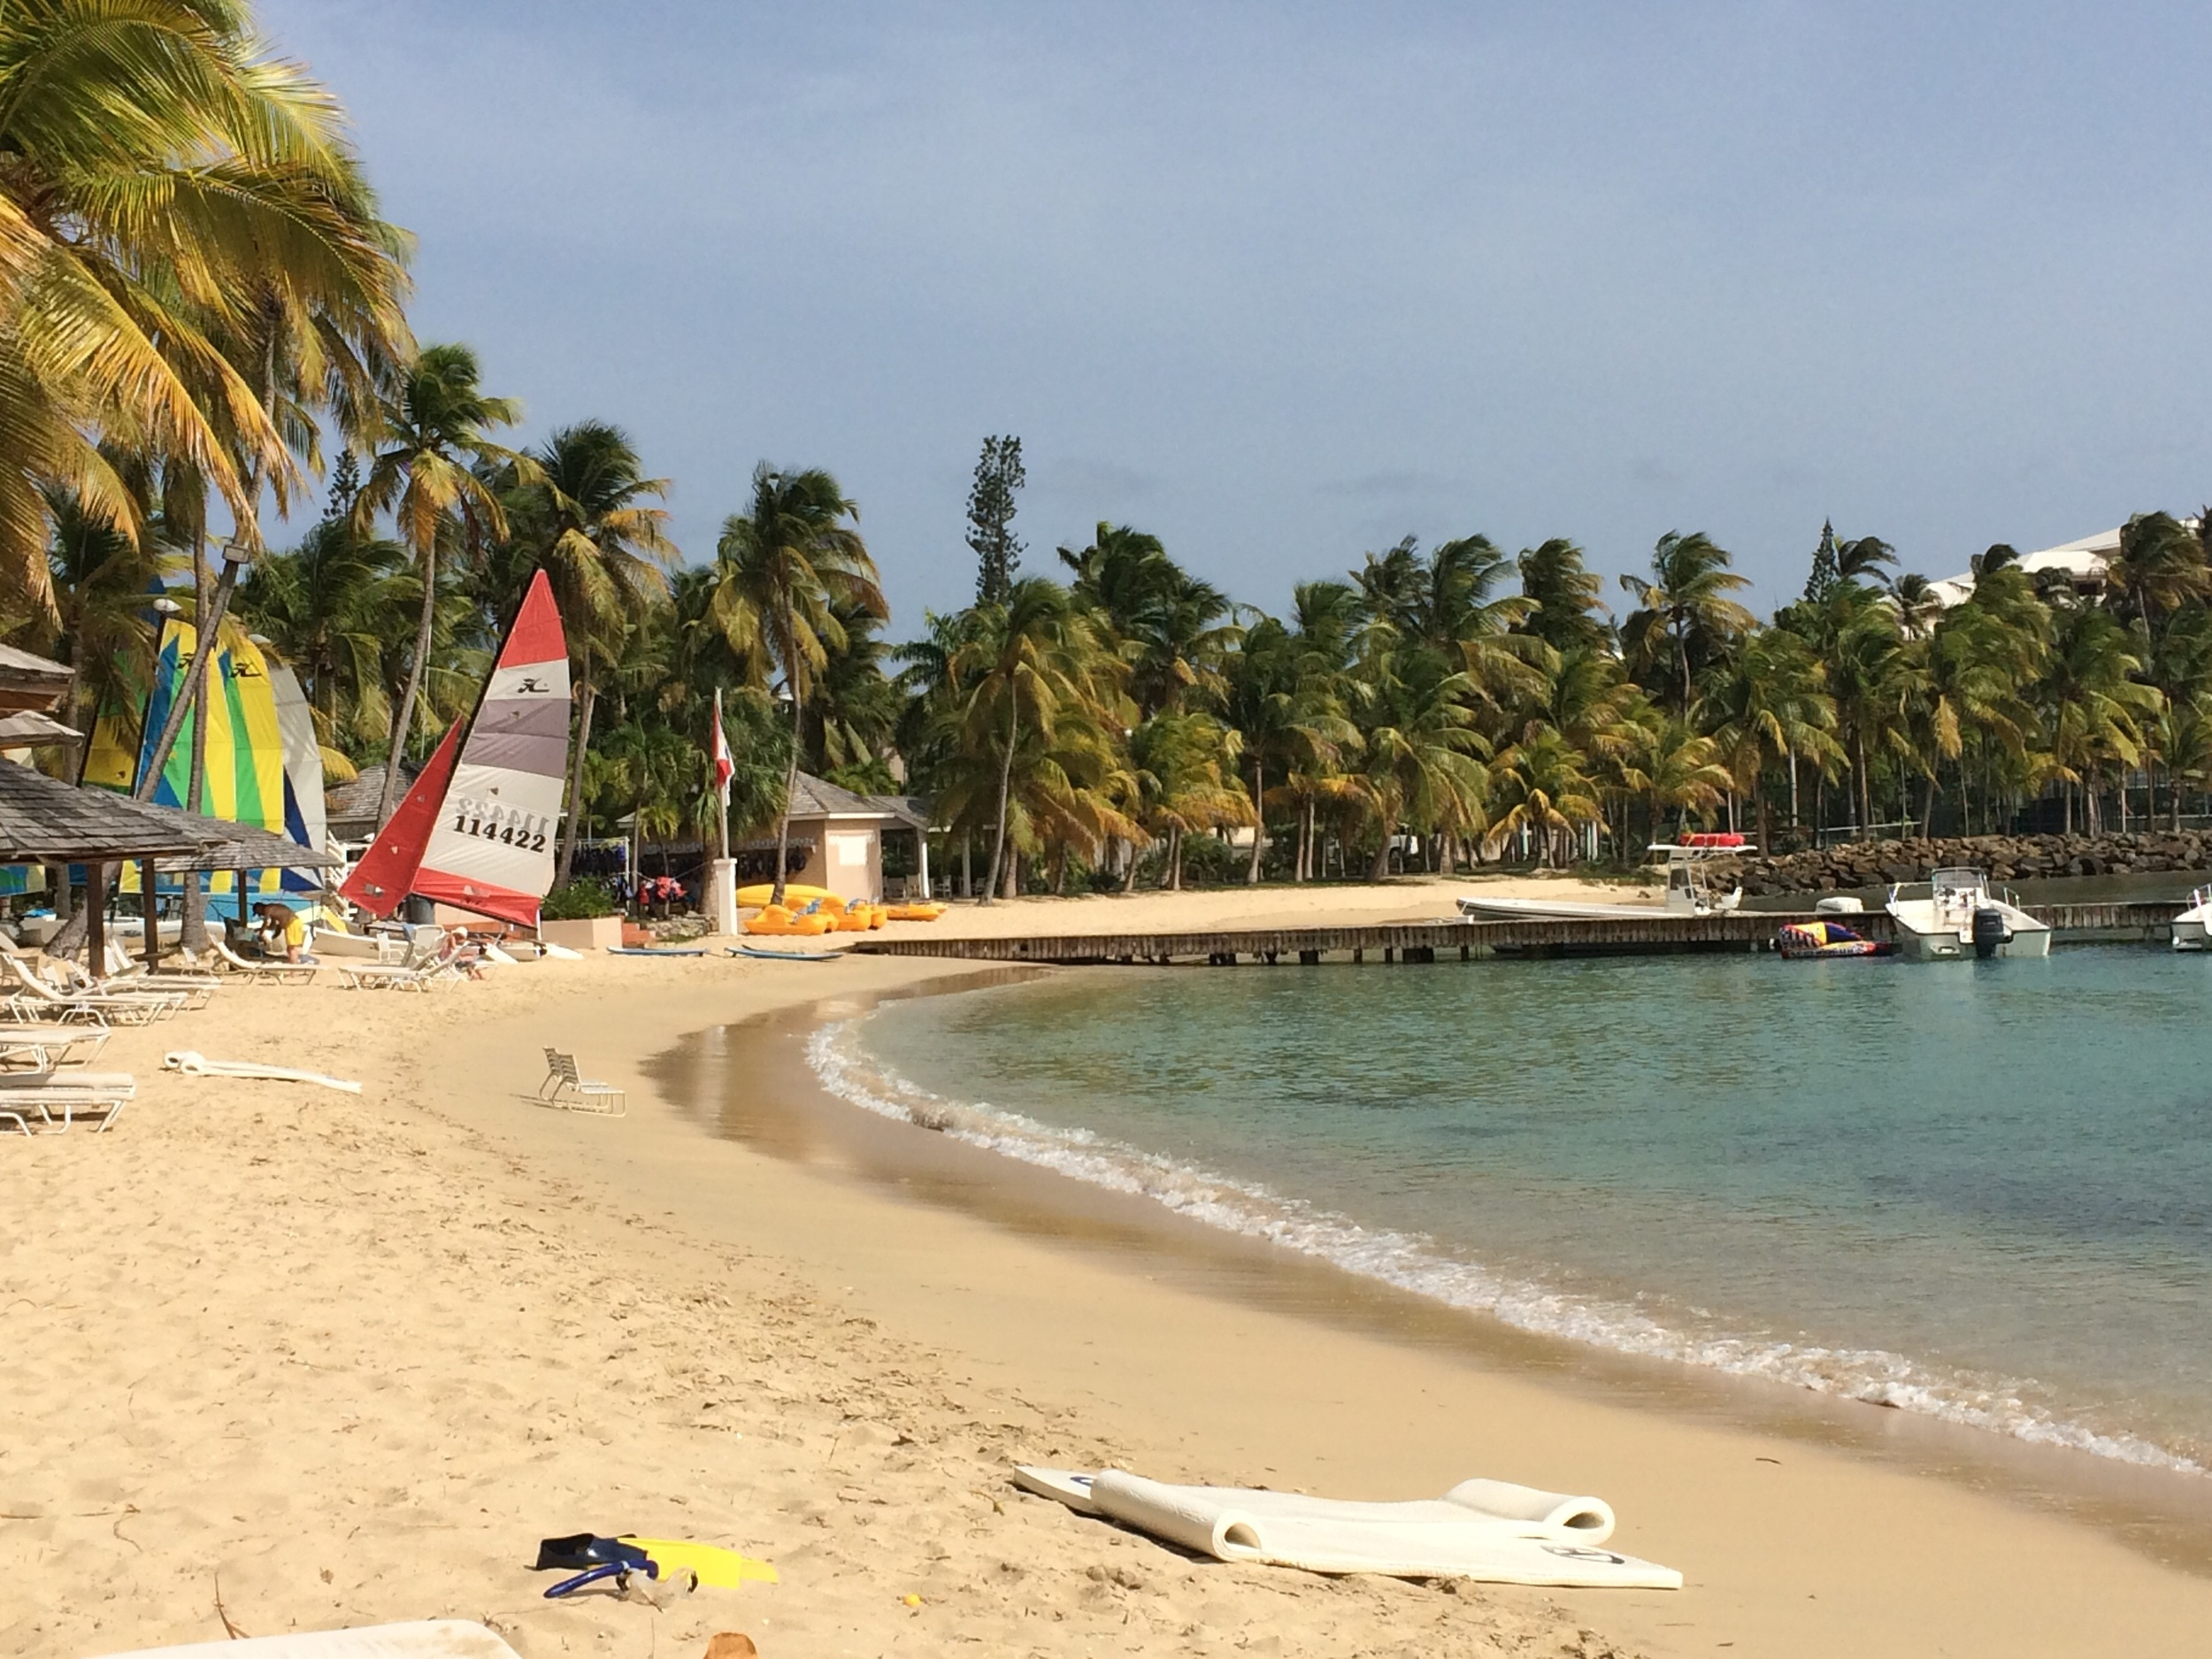 The bay at Curtain Bluff where I tried my hand at stand-up paddle boarding.